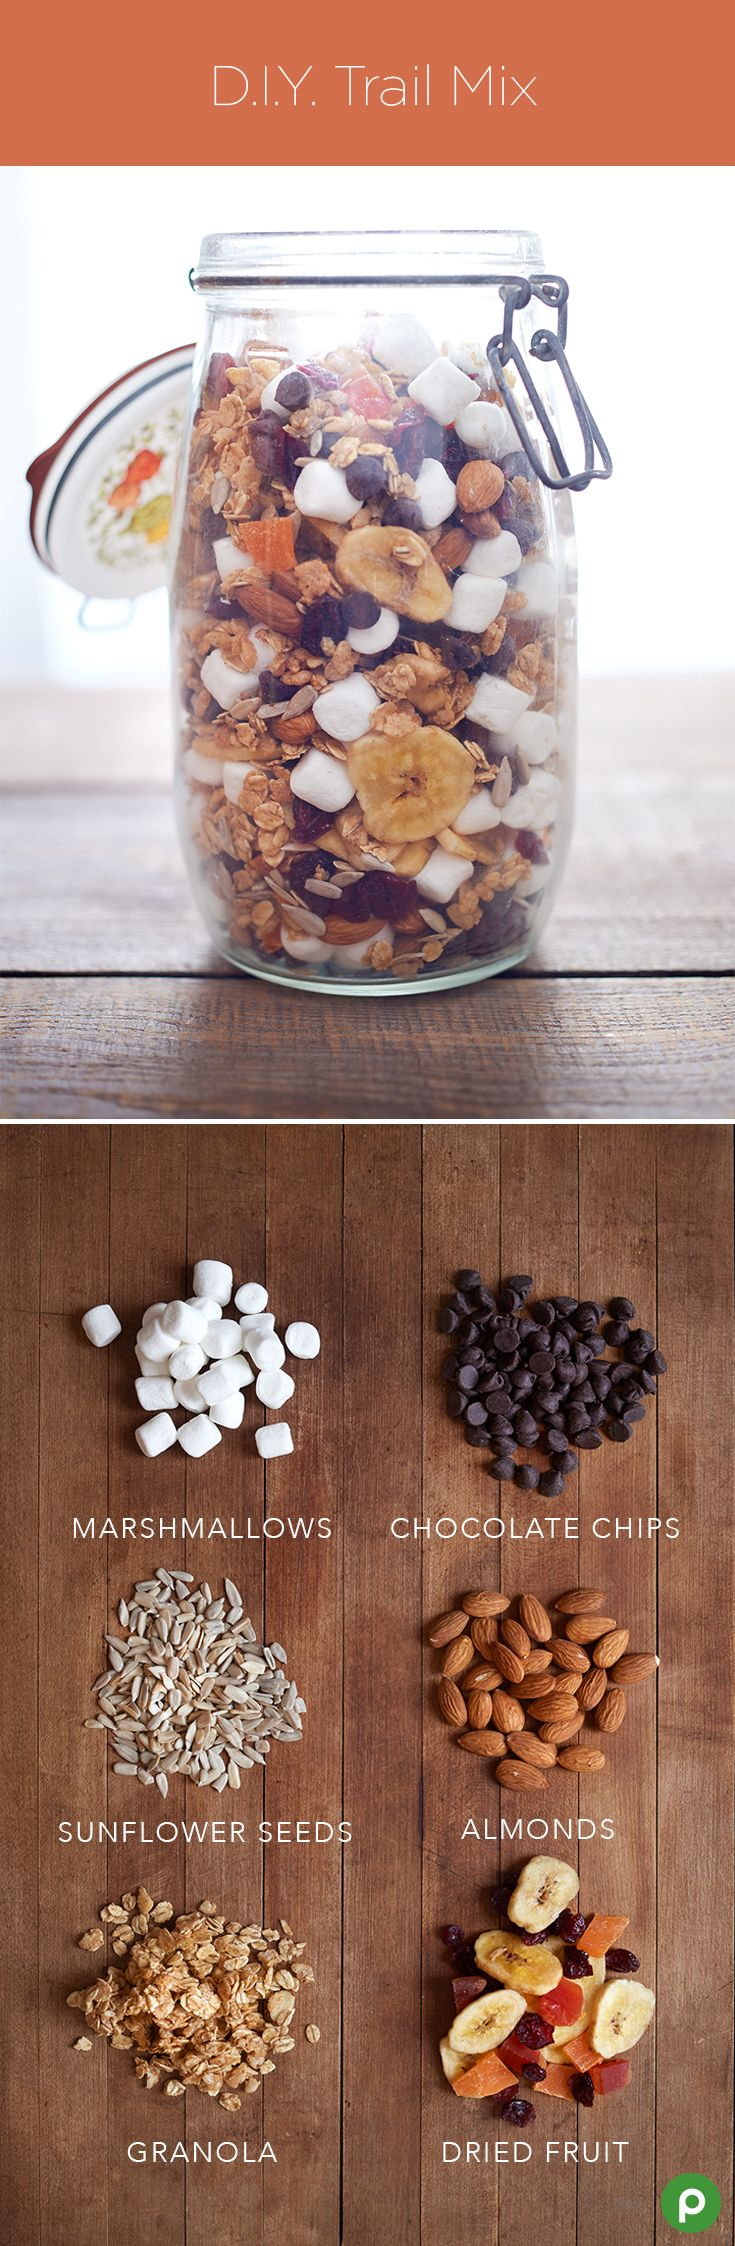 DIY Trail Mix – Put your favorite sweets, treats, dried fruits, and nuts into a jar for your very own trail mix that's perfect for on-the-go snacking. Try mixing marshmallows, chocolate chips, sunflower seeds, almonds, granola, and dried fruit.